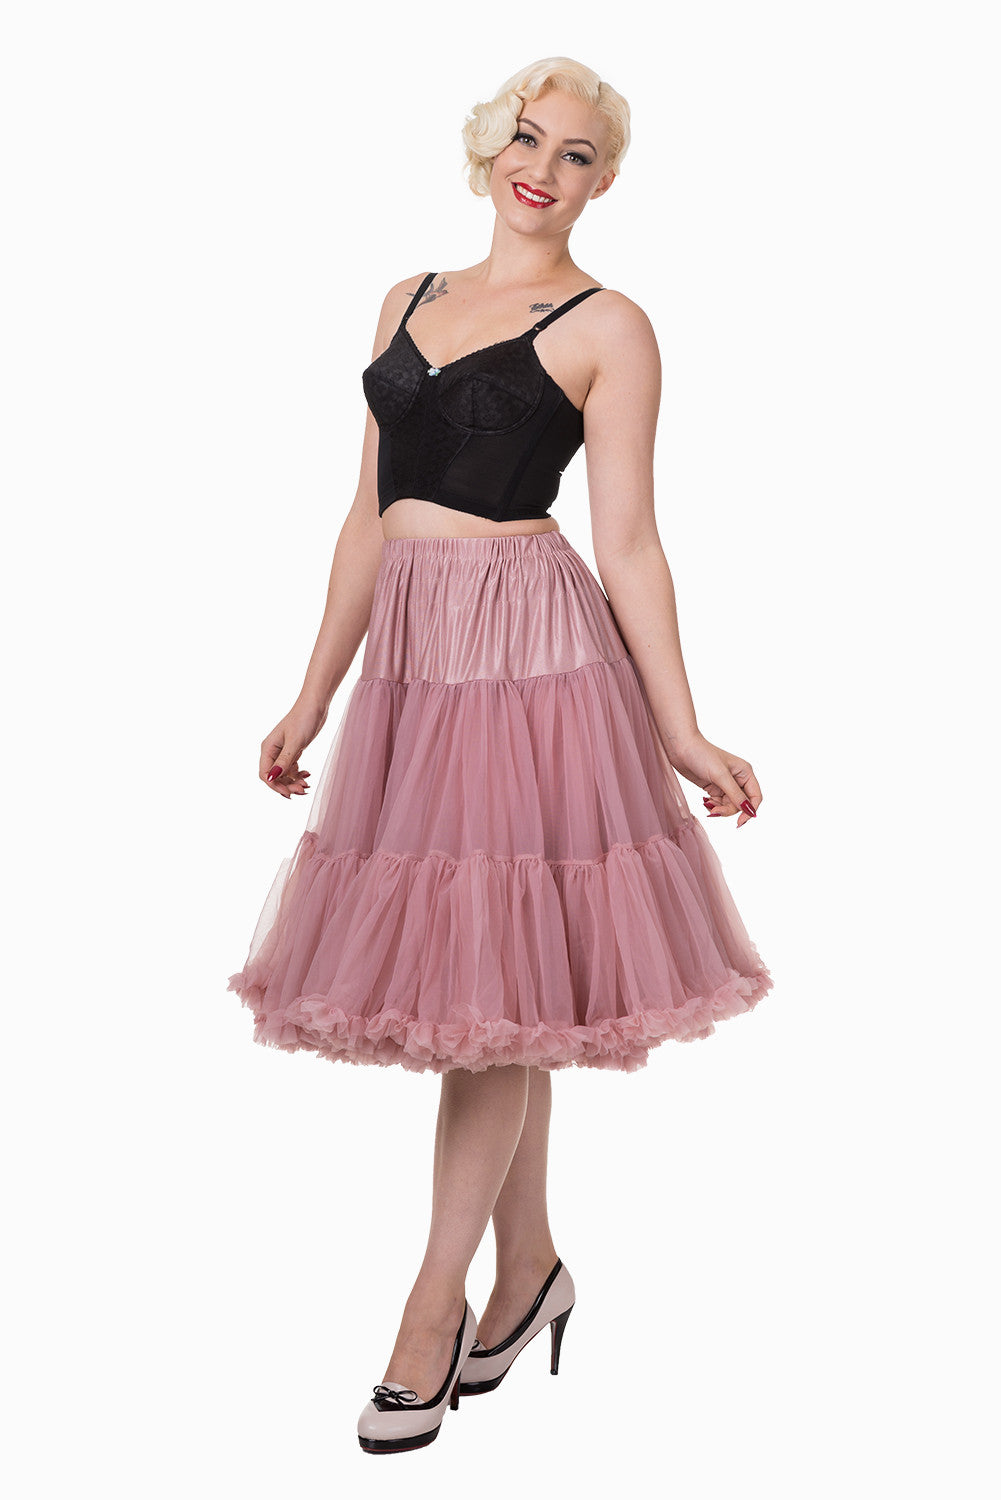 Lifeforms Petticoat in Dusty Pink